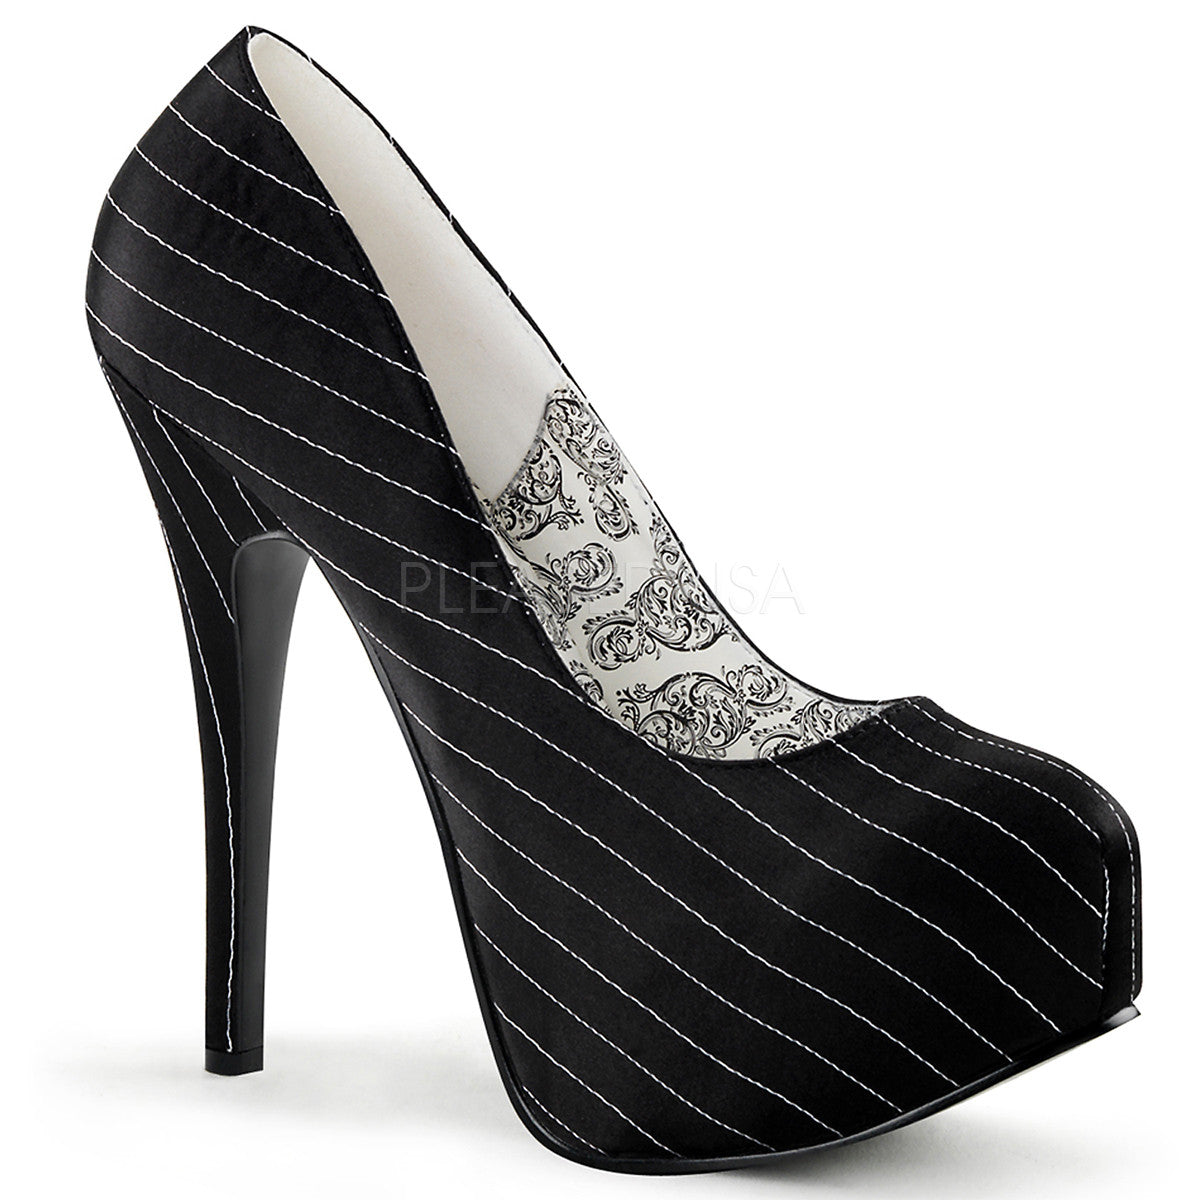 Bordello,Bordello TEEZE-06 Black Pinstripe Satin Pumps - Shoecup.com